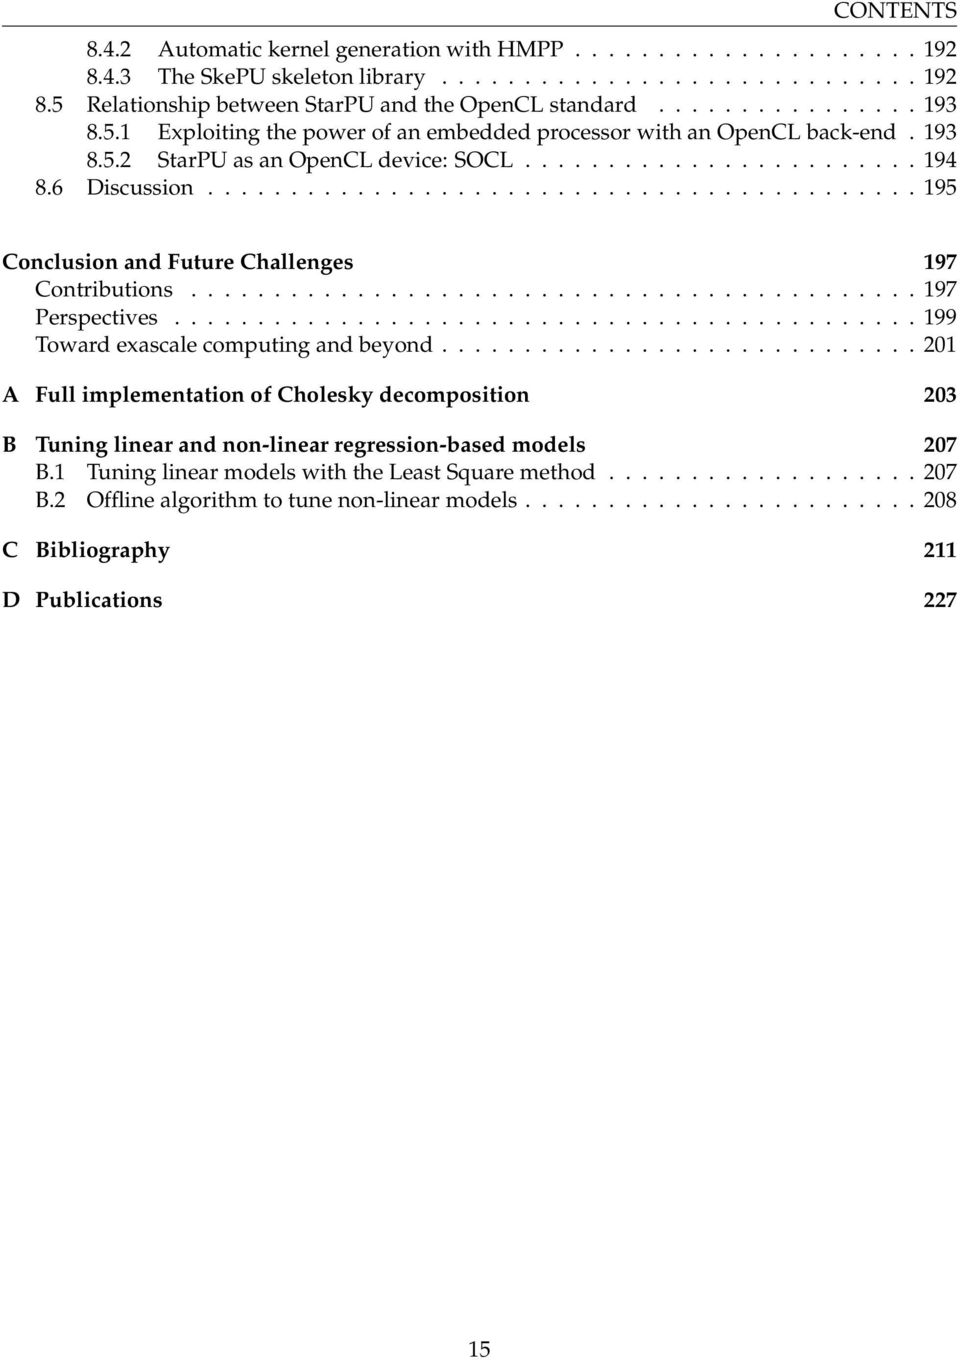 .......................................... 195 Conclusion and Future Challenges 197 Contributions............................................ 197 Perspectives.